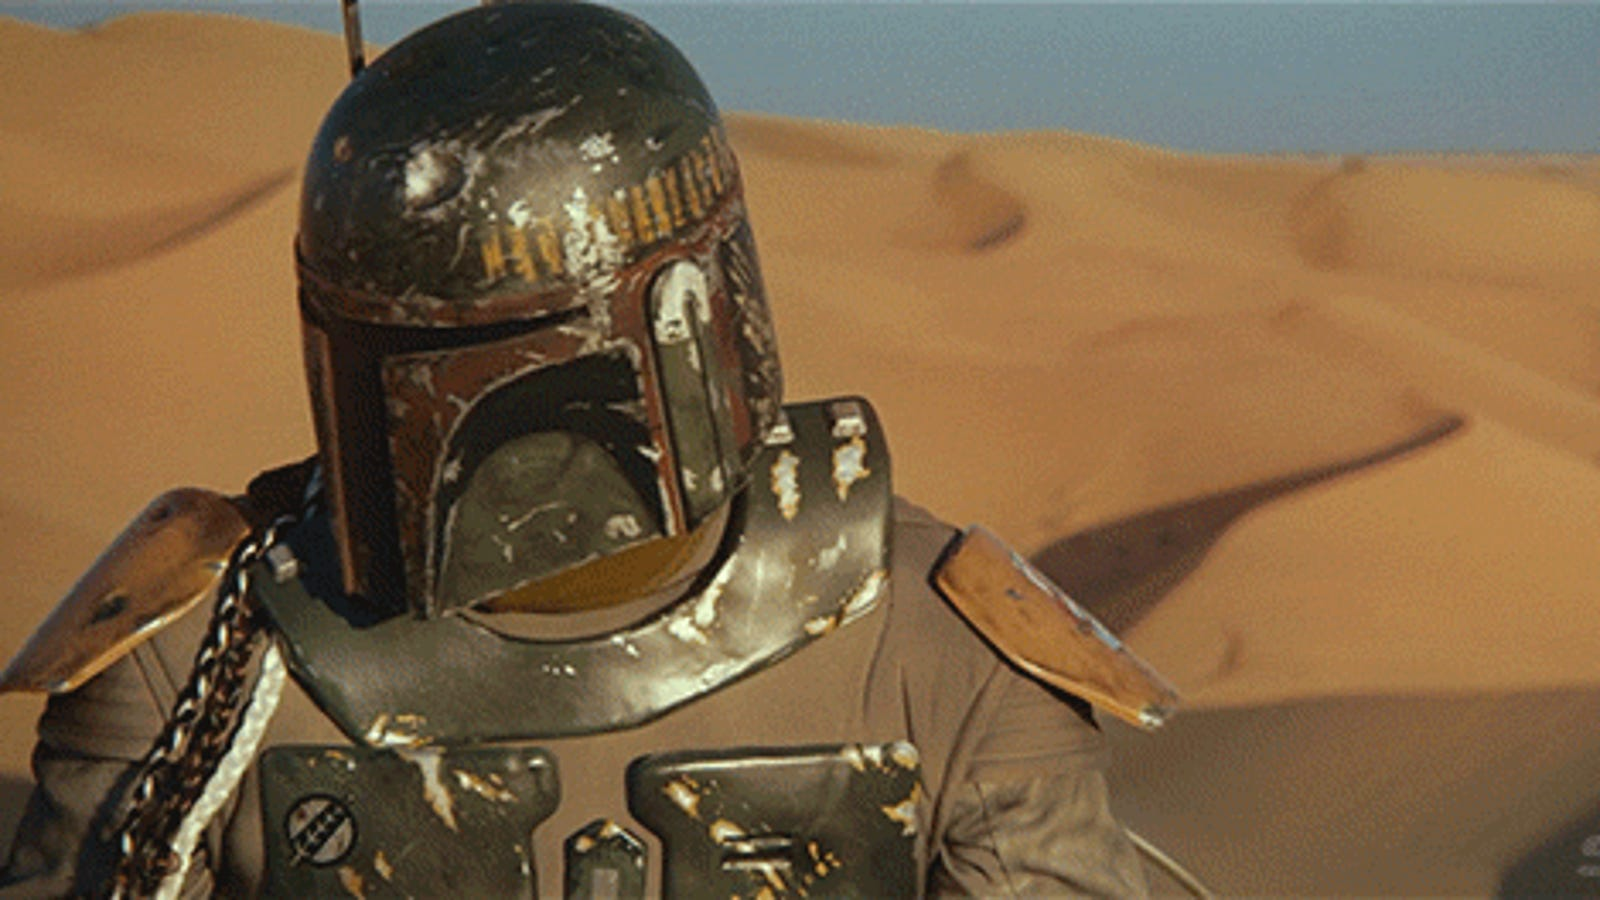 Cool short film teases what happens to Boba Fett after Star Wars